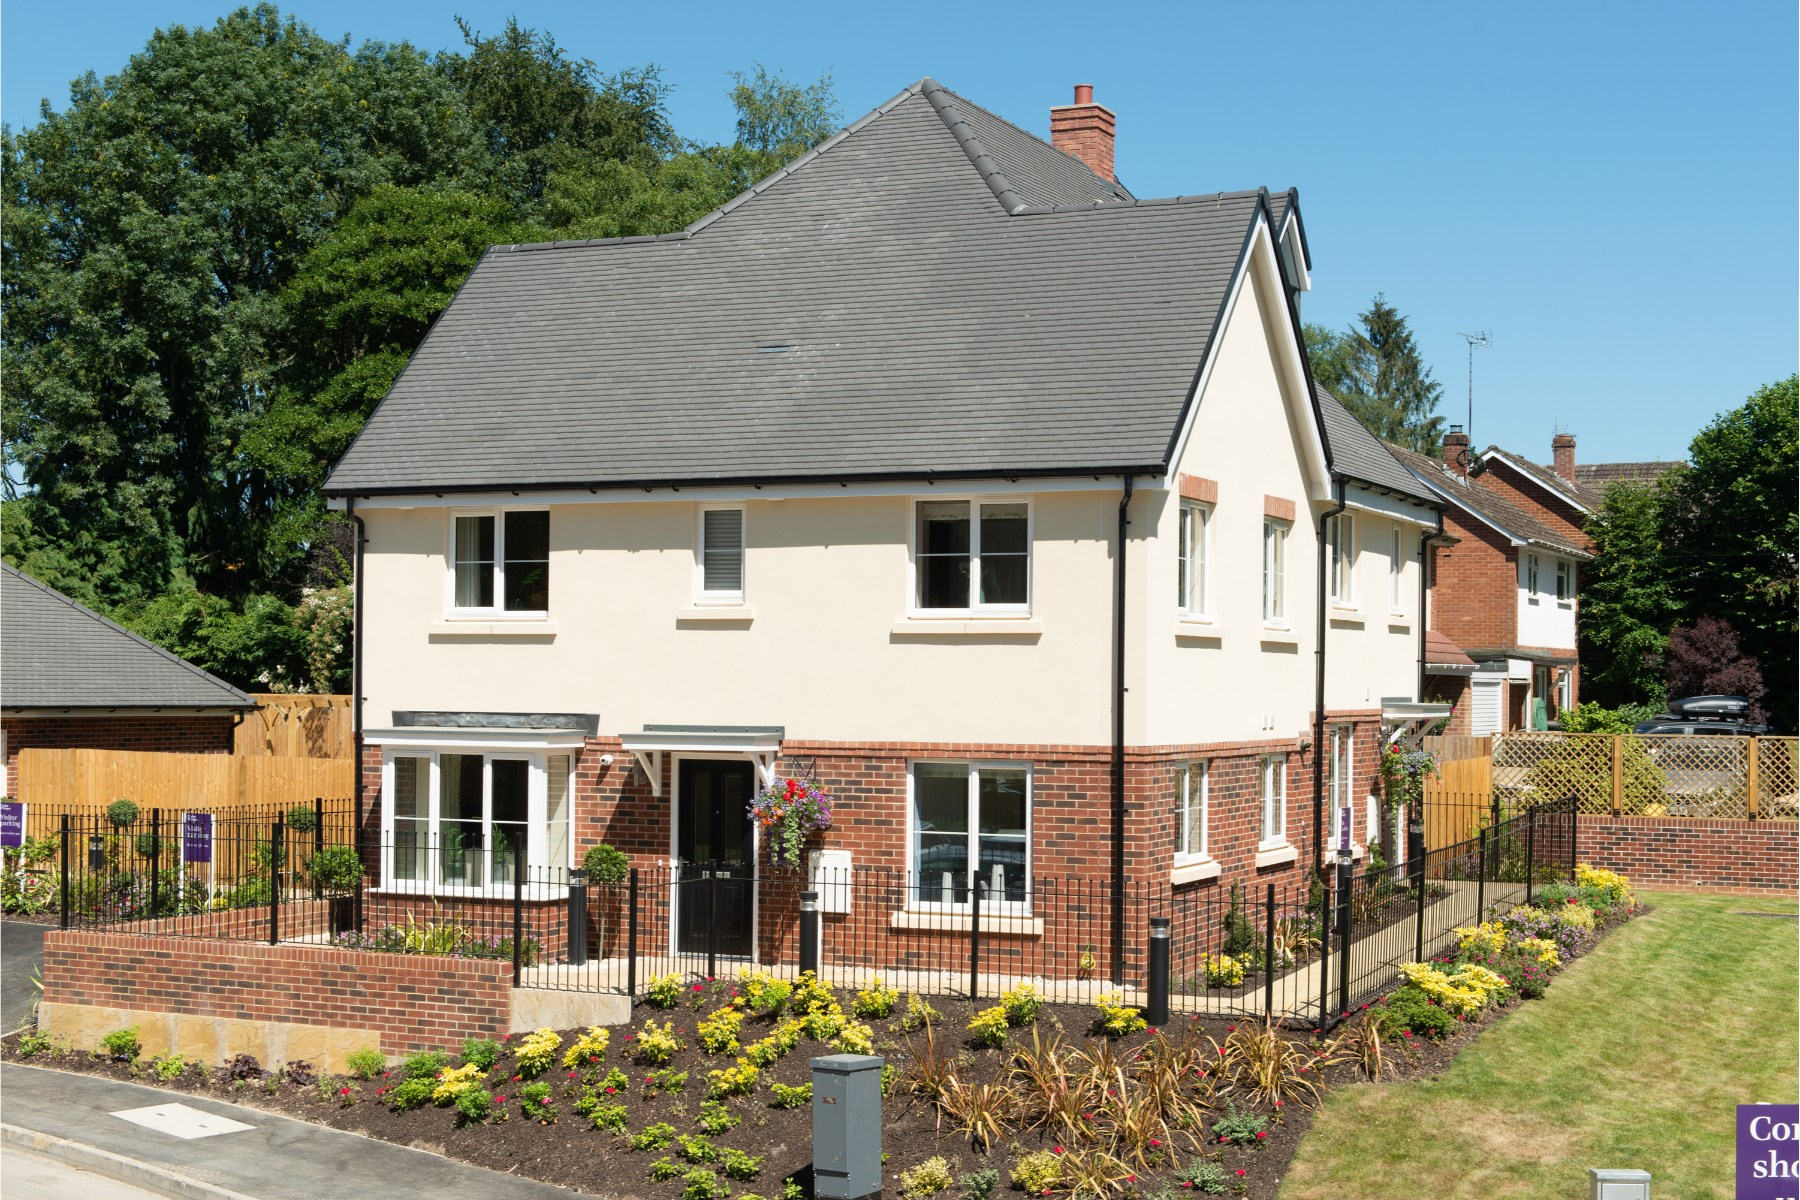 External photography of Easedale show home at Oak Park